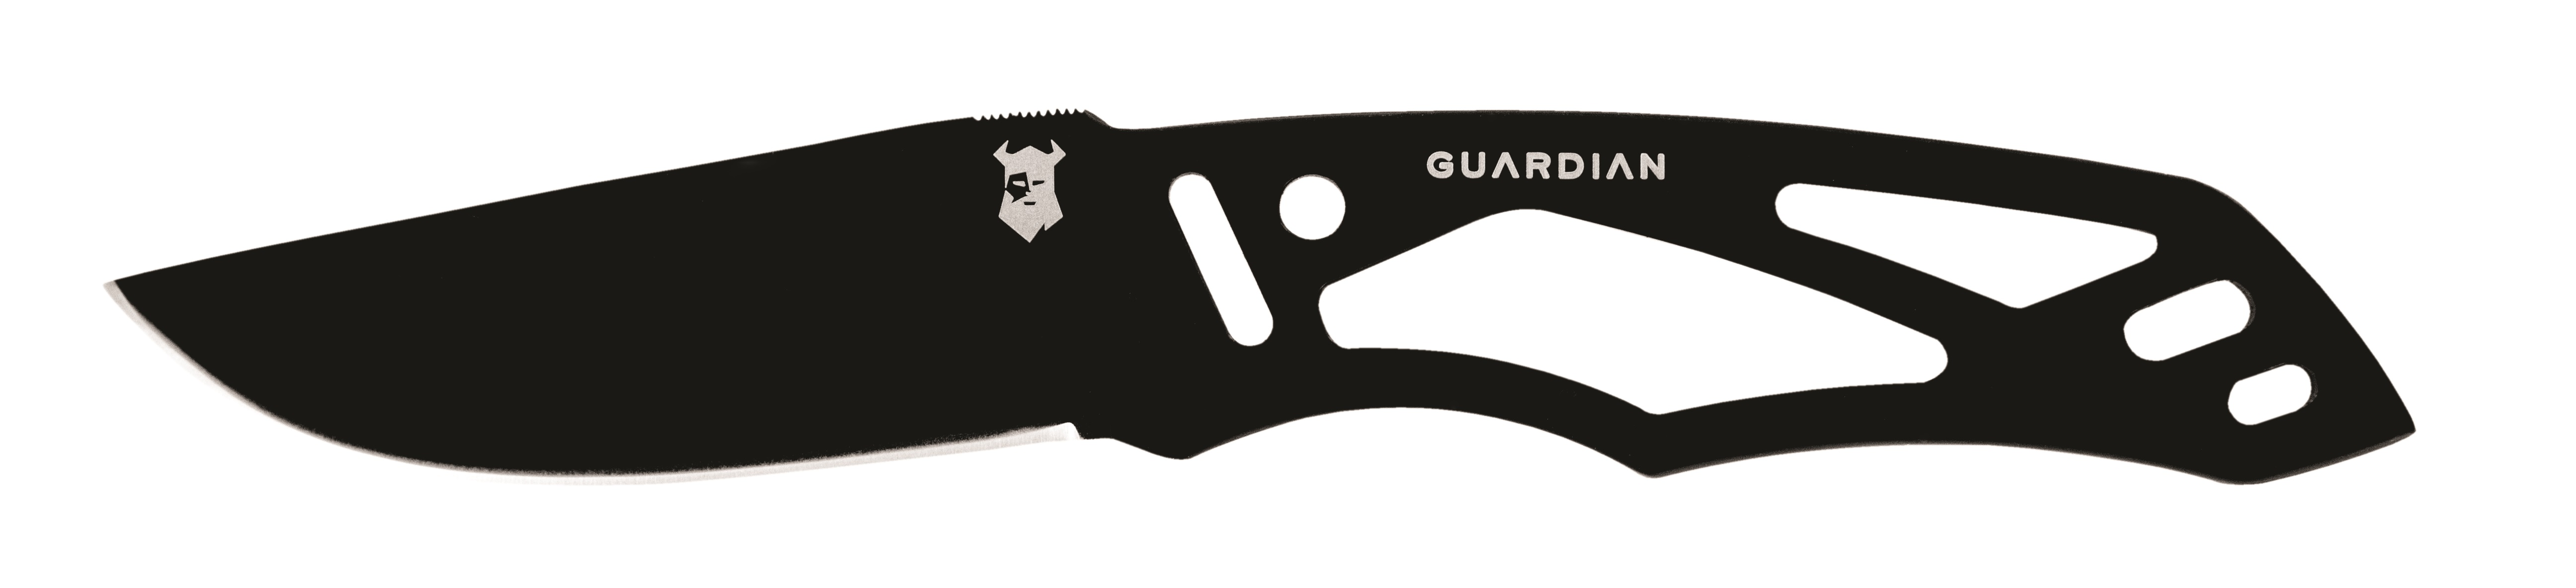 31-002541 - GERBER K3 Skeletal Fixed Blade Knife Blister